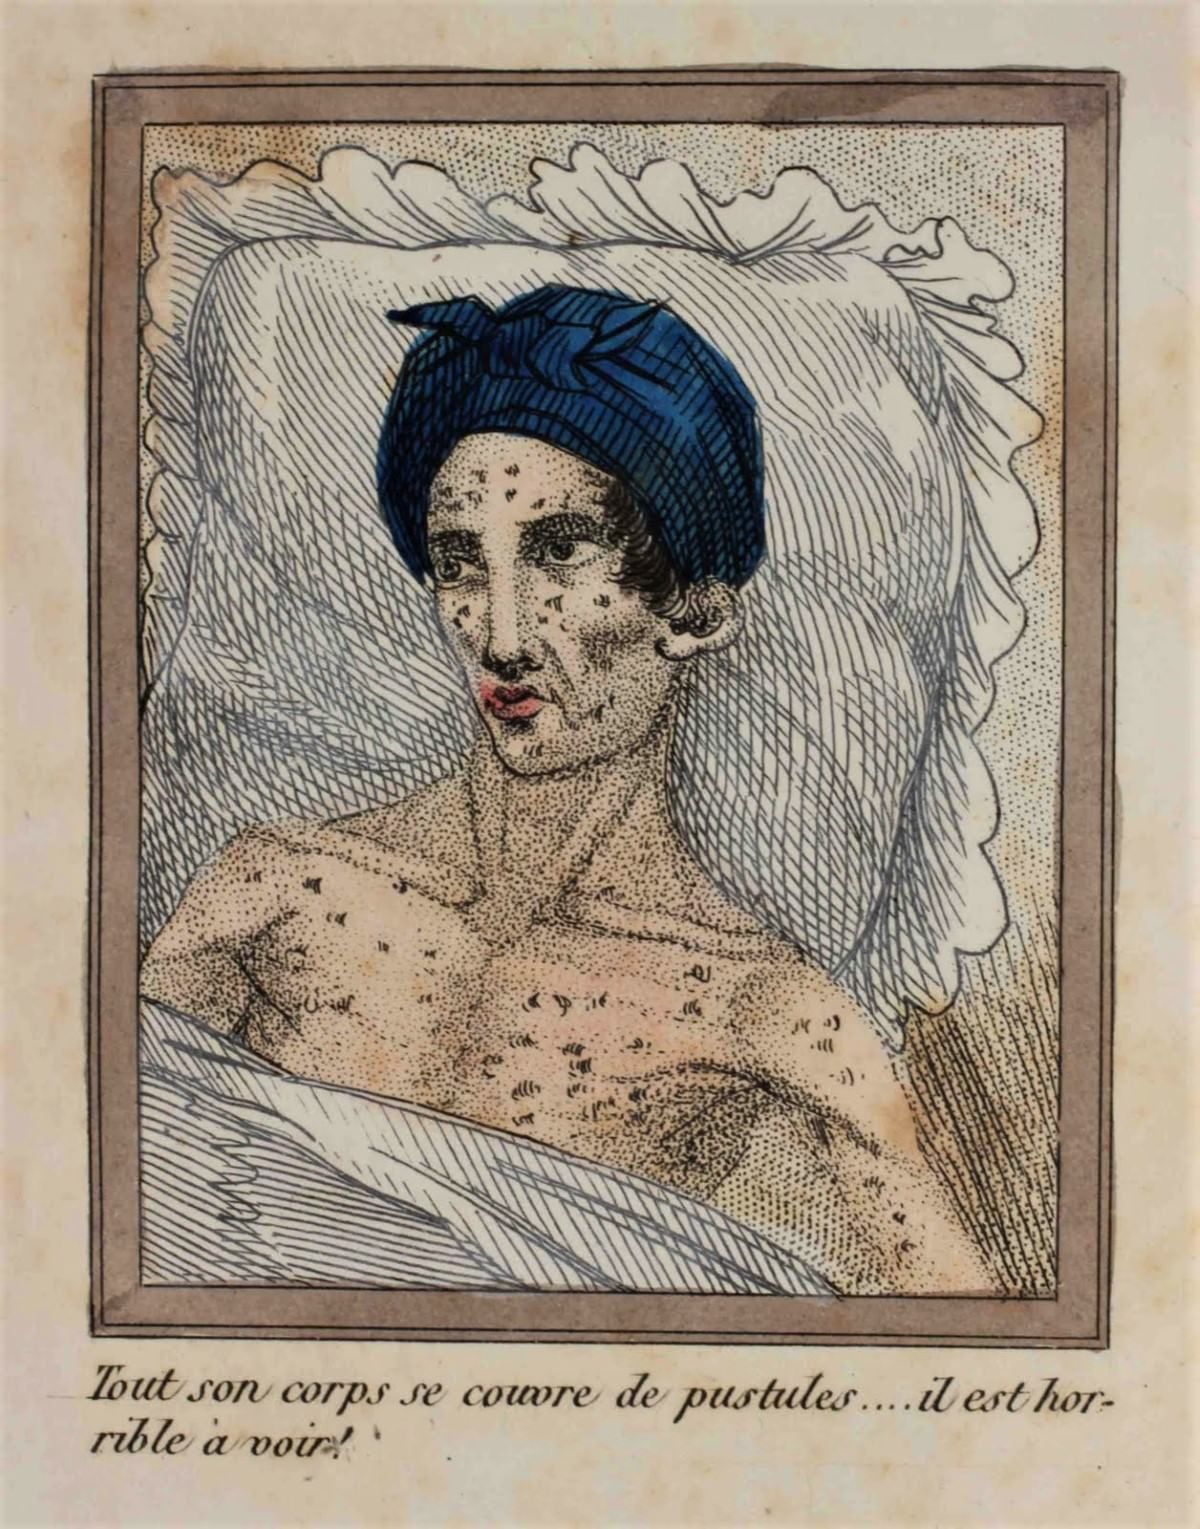 His body once young and lithe is now covered with suppurating sores that burst and leak! He is a horrible sight!